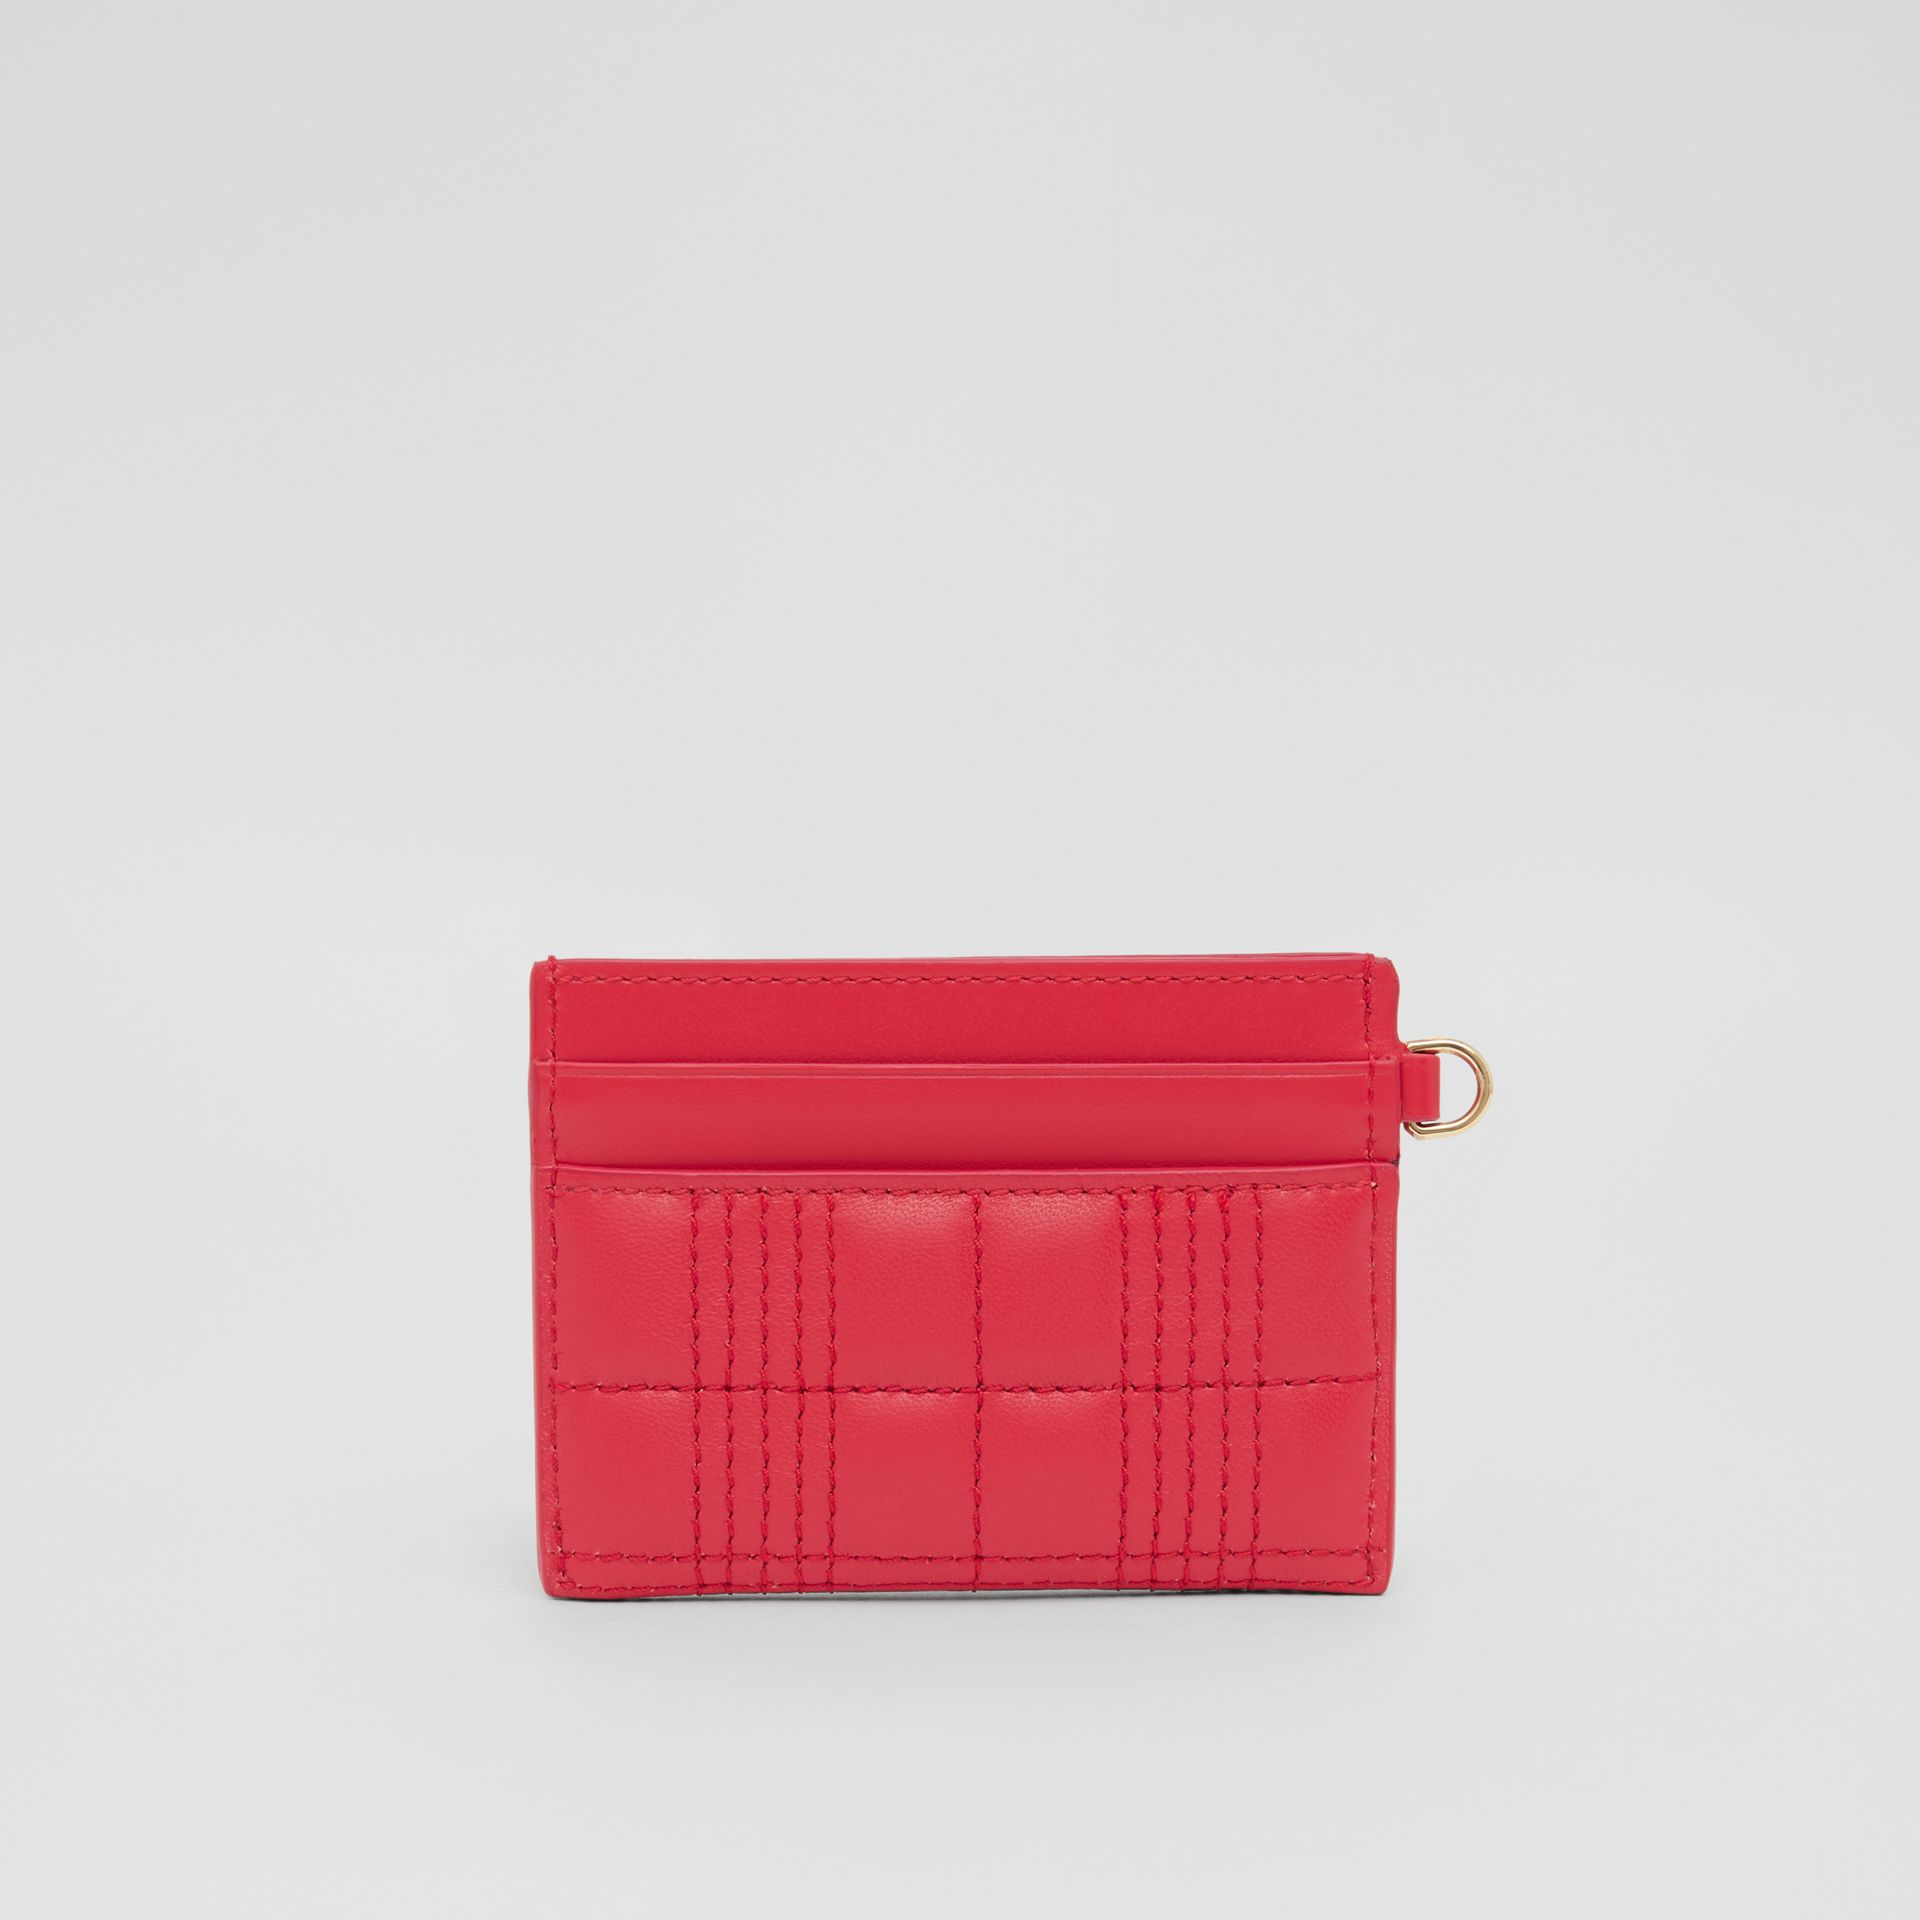 Monogram Motif Quilted Lambskin Card Case in Bright Red - Women | Burberry Hong Kong S.A.R - gallery image 4